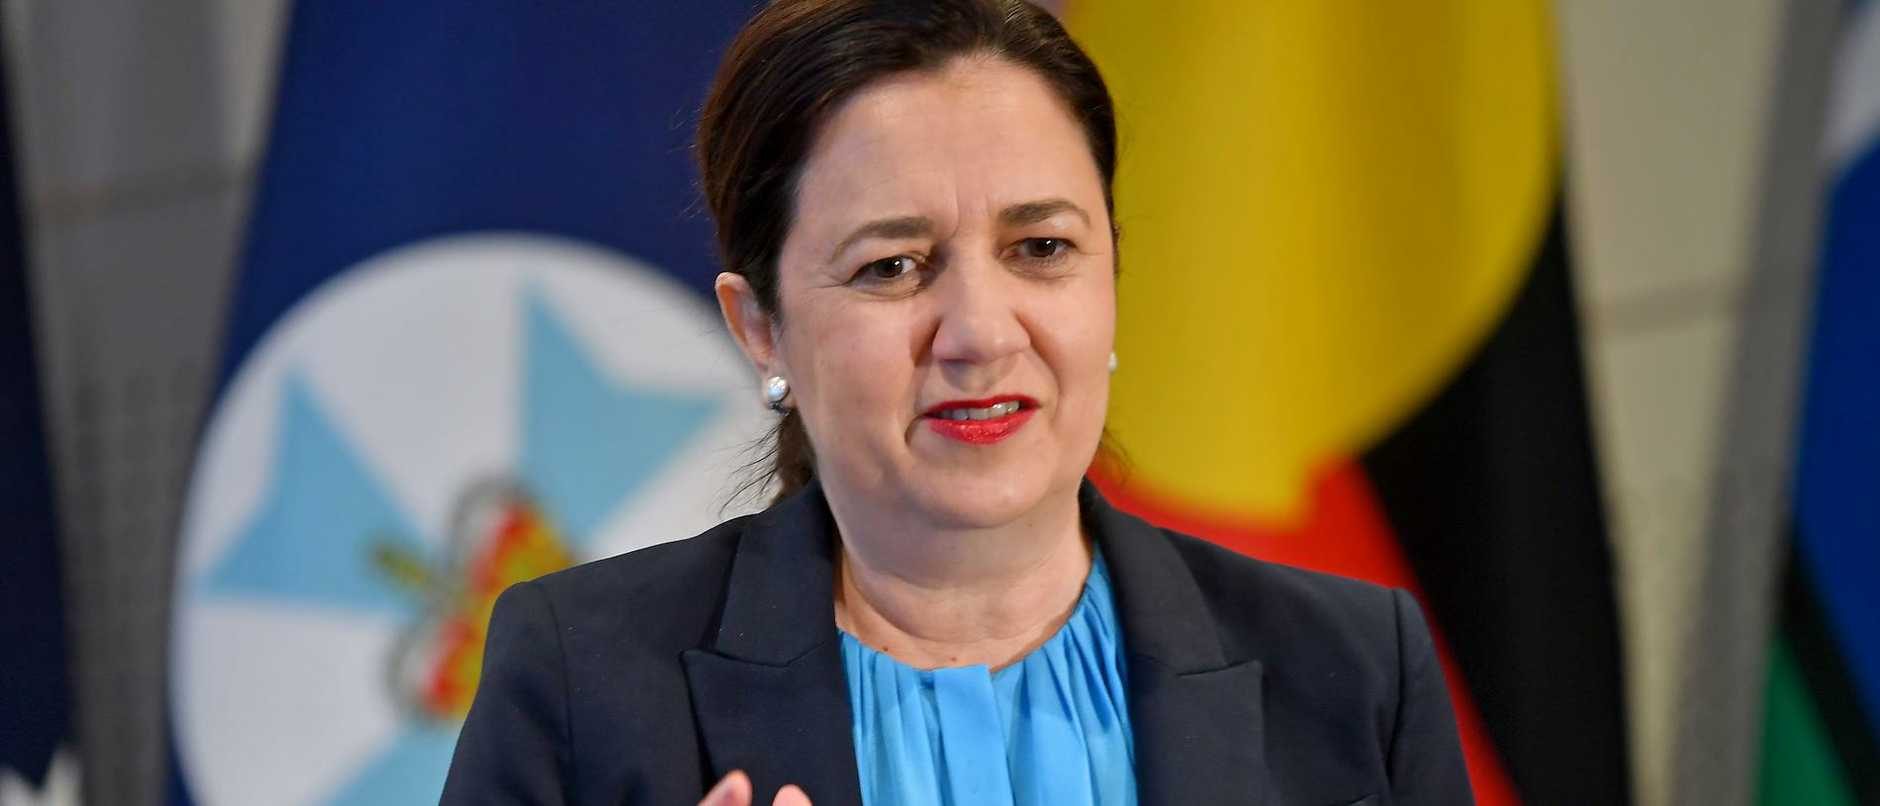 Premier Annastacia Palaszczuk has today confirmed plans will be put in place for Cairns to become a quarantine hub for returning overseas travellers.